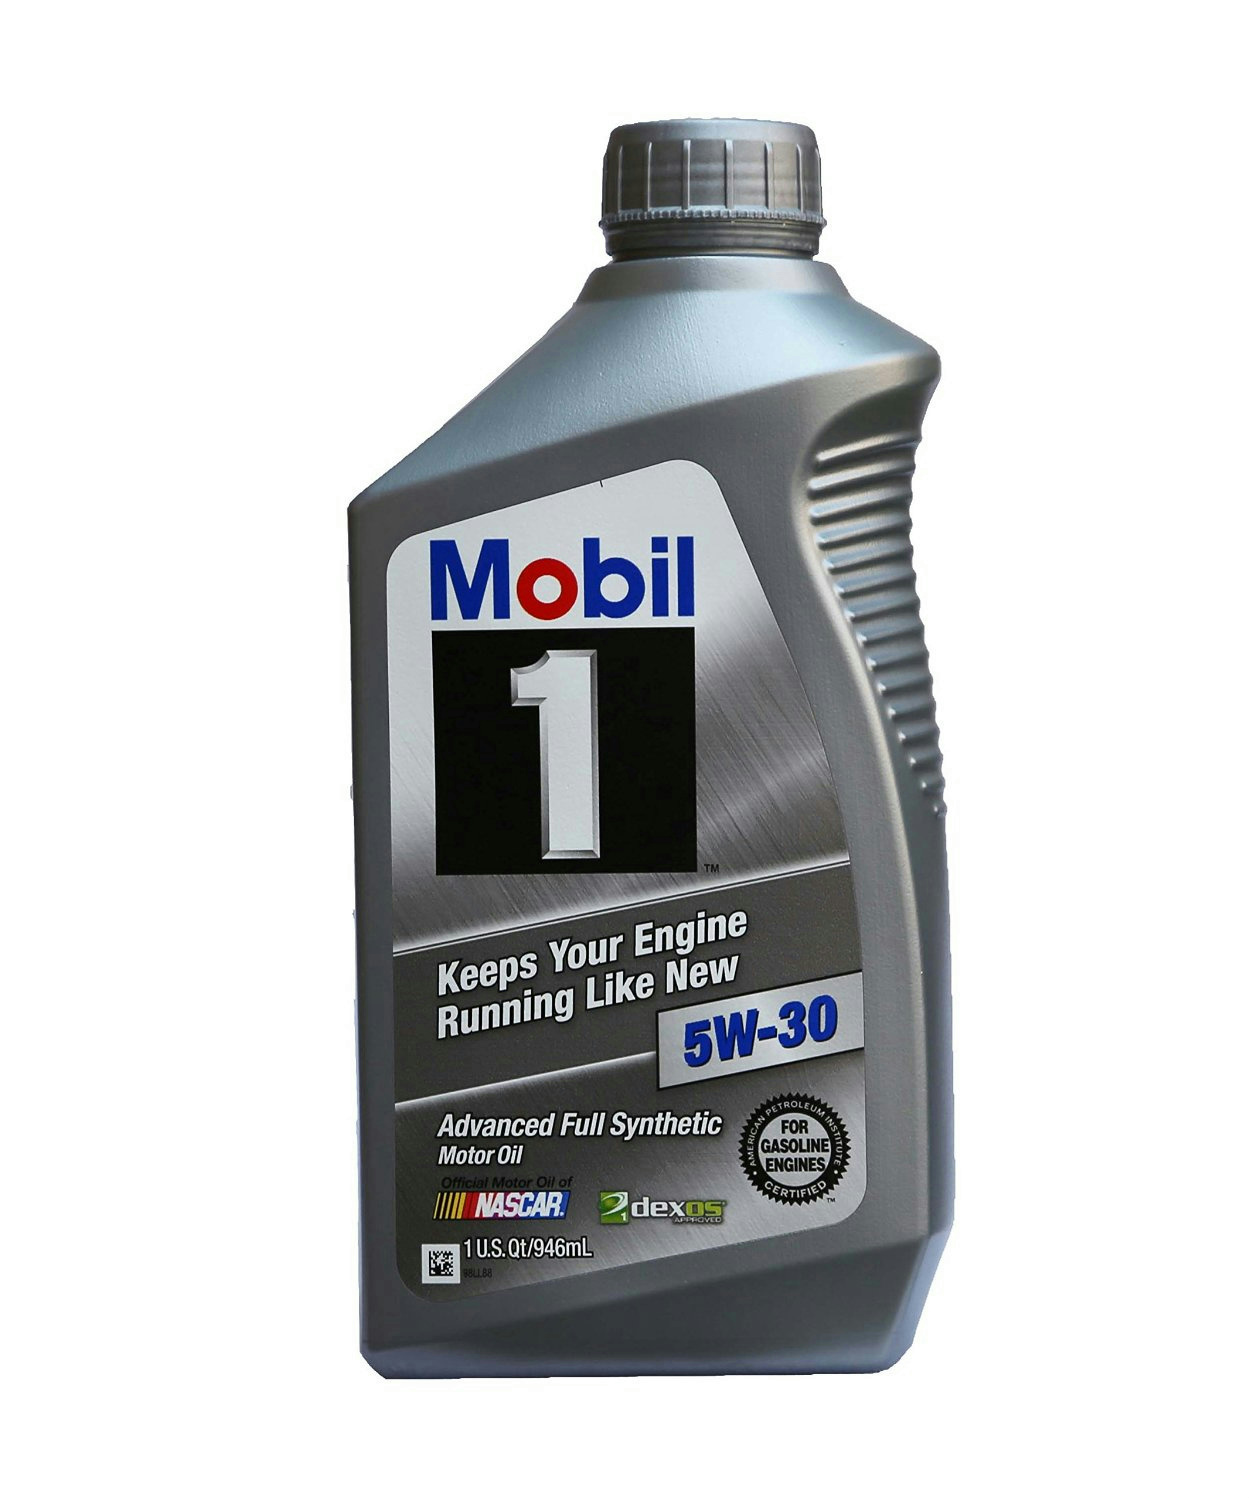 Mobil 1 5w 30 Full Synthetic Oil Change Kit 15208 65f0e Ebay